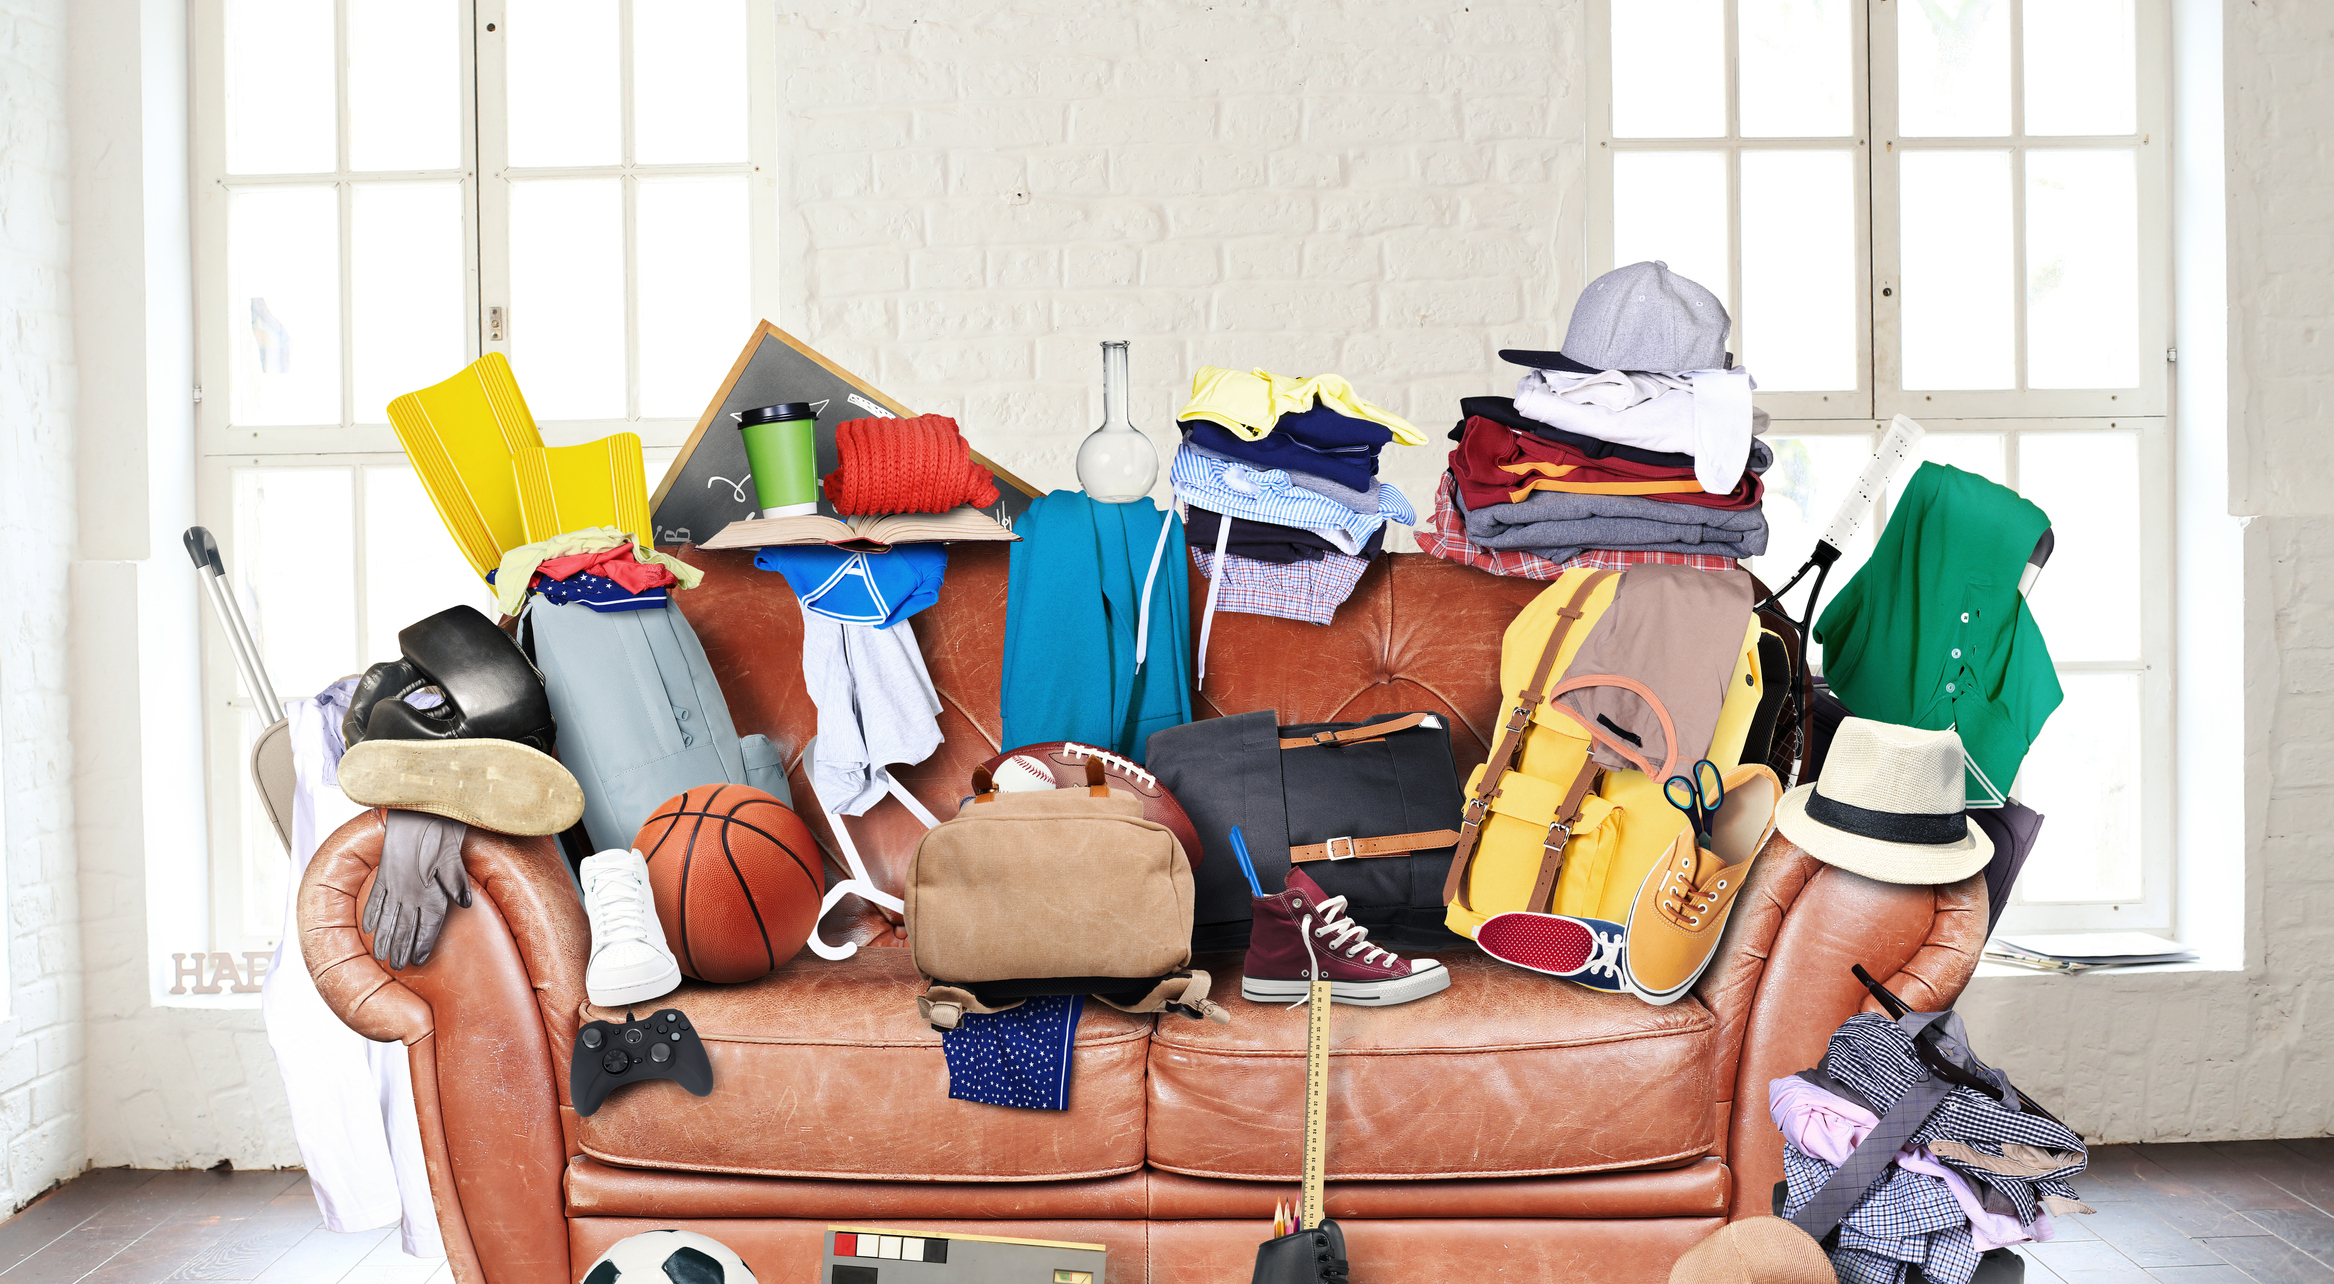 Large leather sofa with a bunch of different things Image credit: dorian2013, iStock